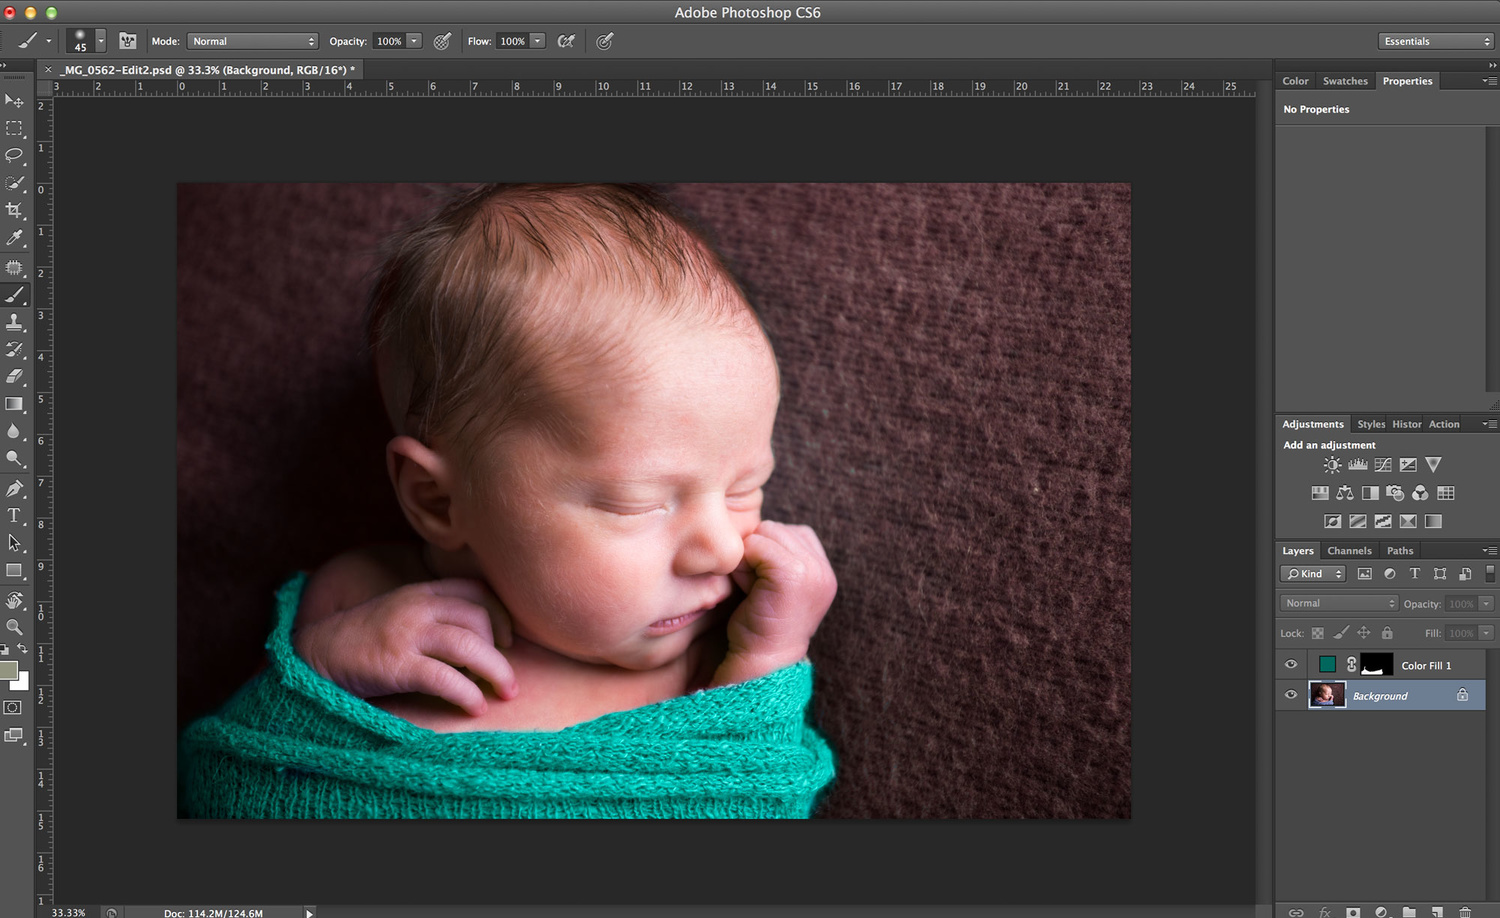 newborn sleeping in teal wrap